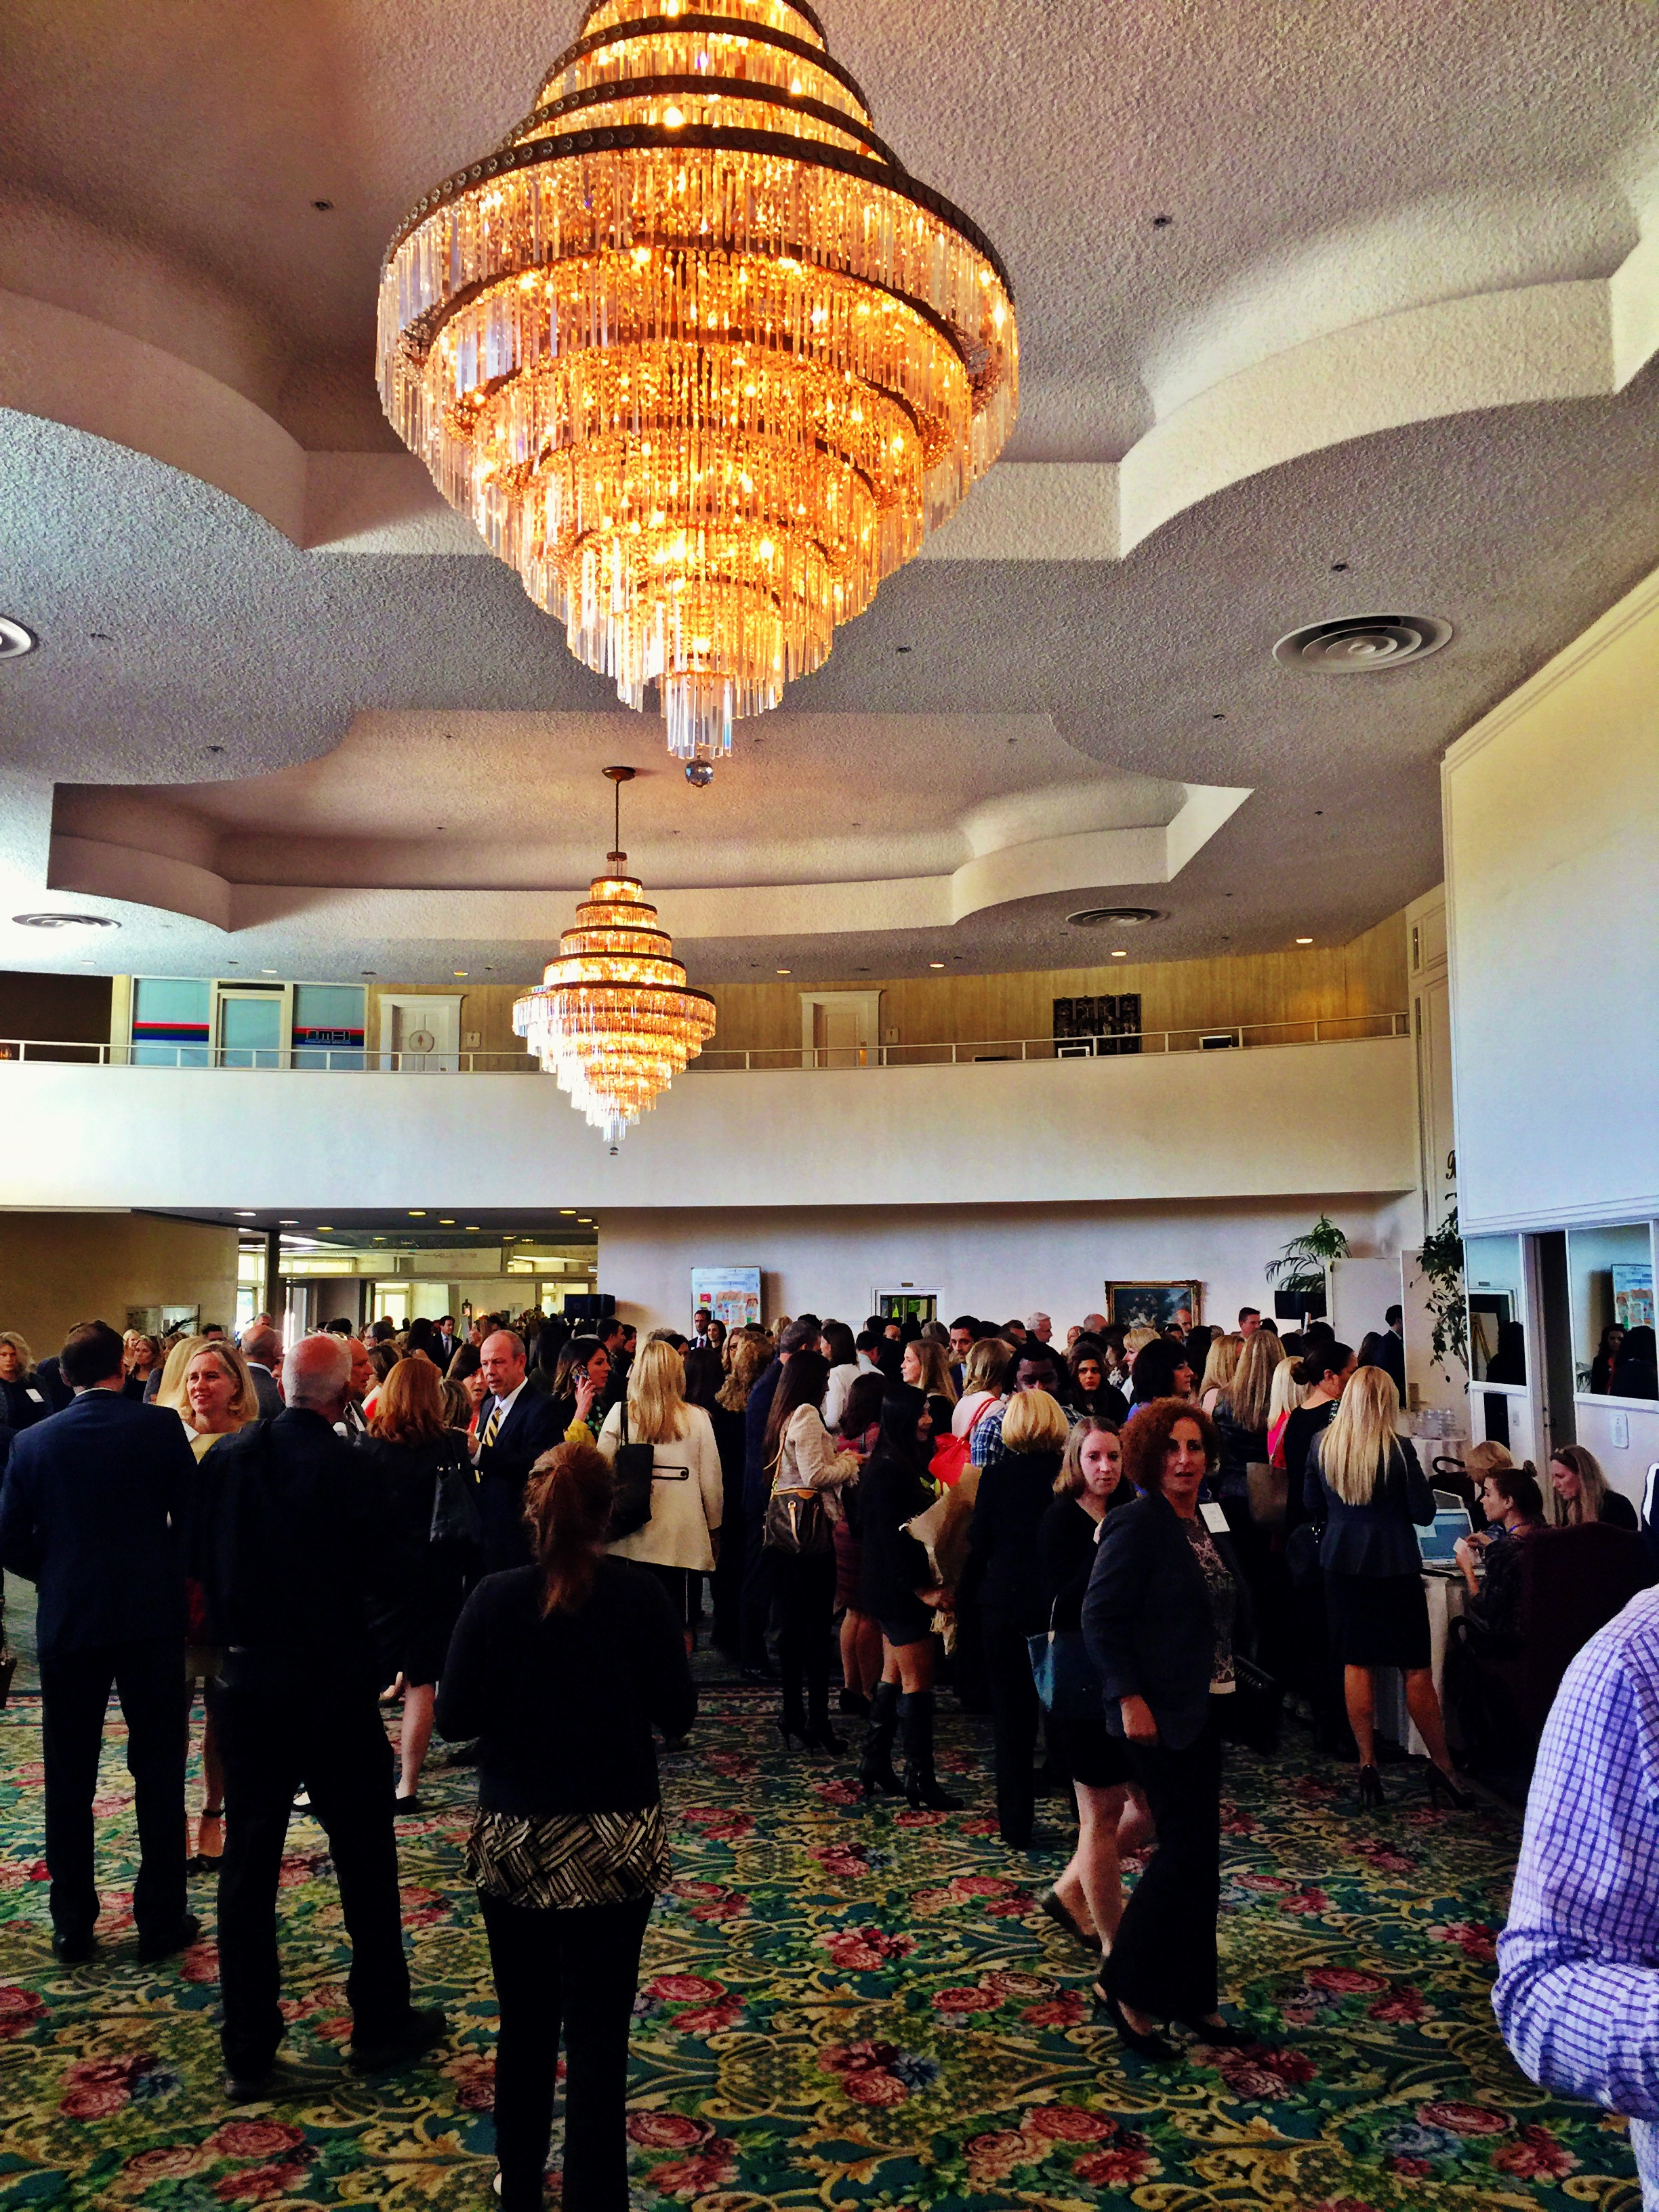 Guests mingling in the lobby